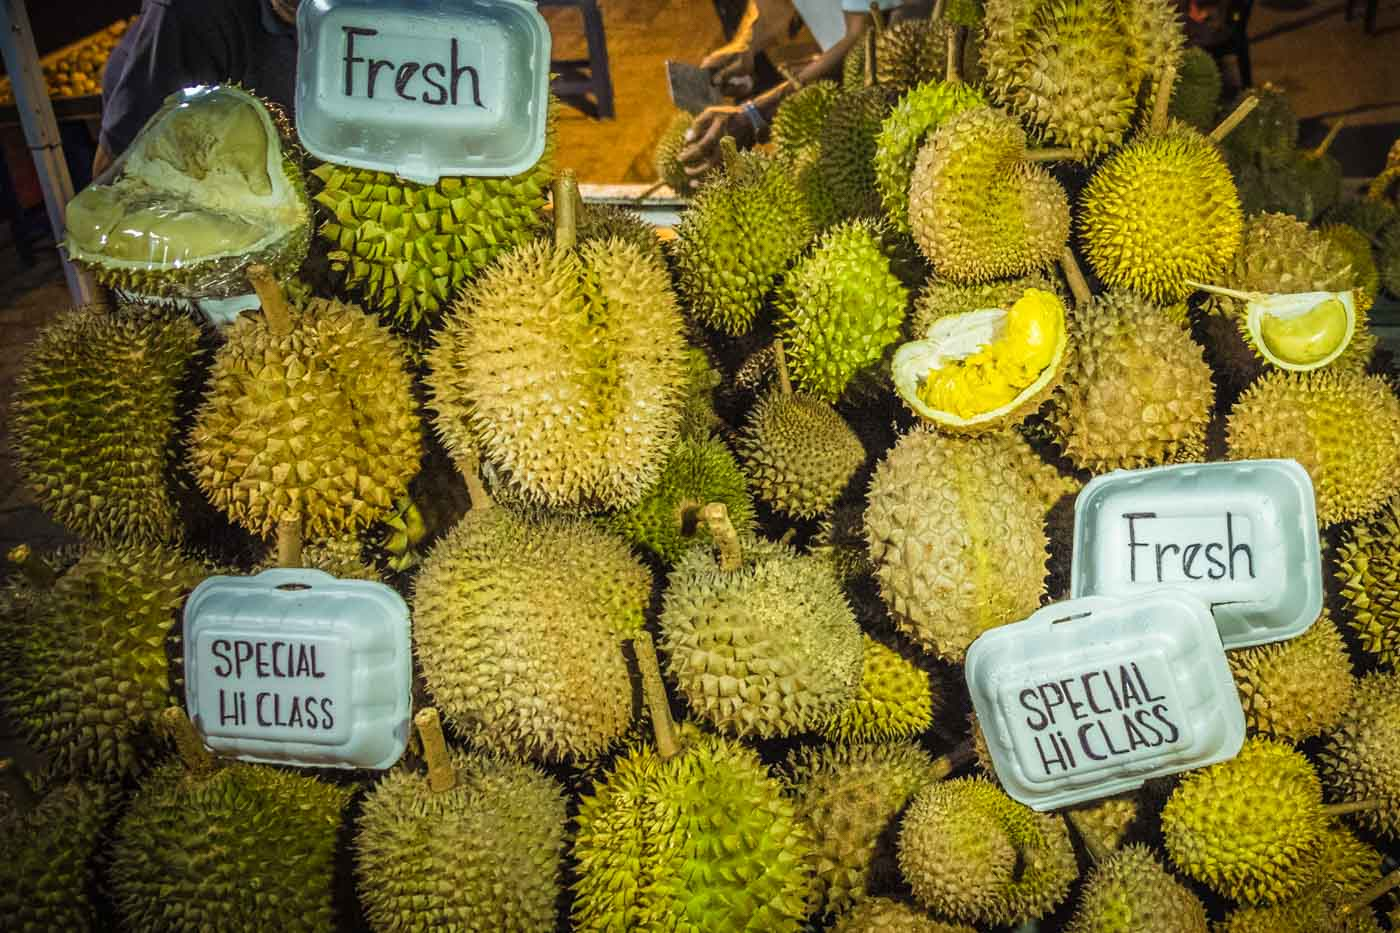 Things To Do In Kota Kinabalu: a City of Seafood, Beaches and Durian.